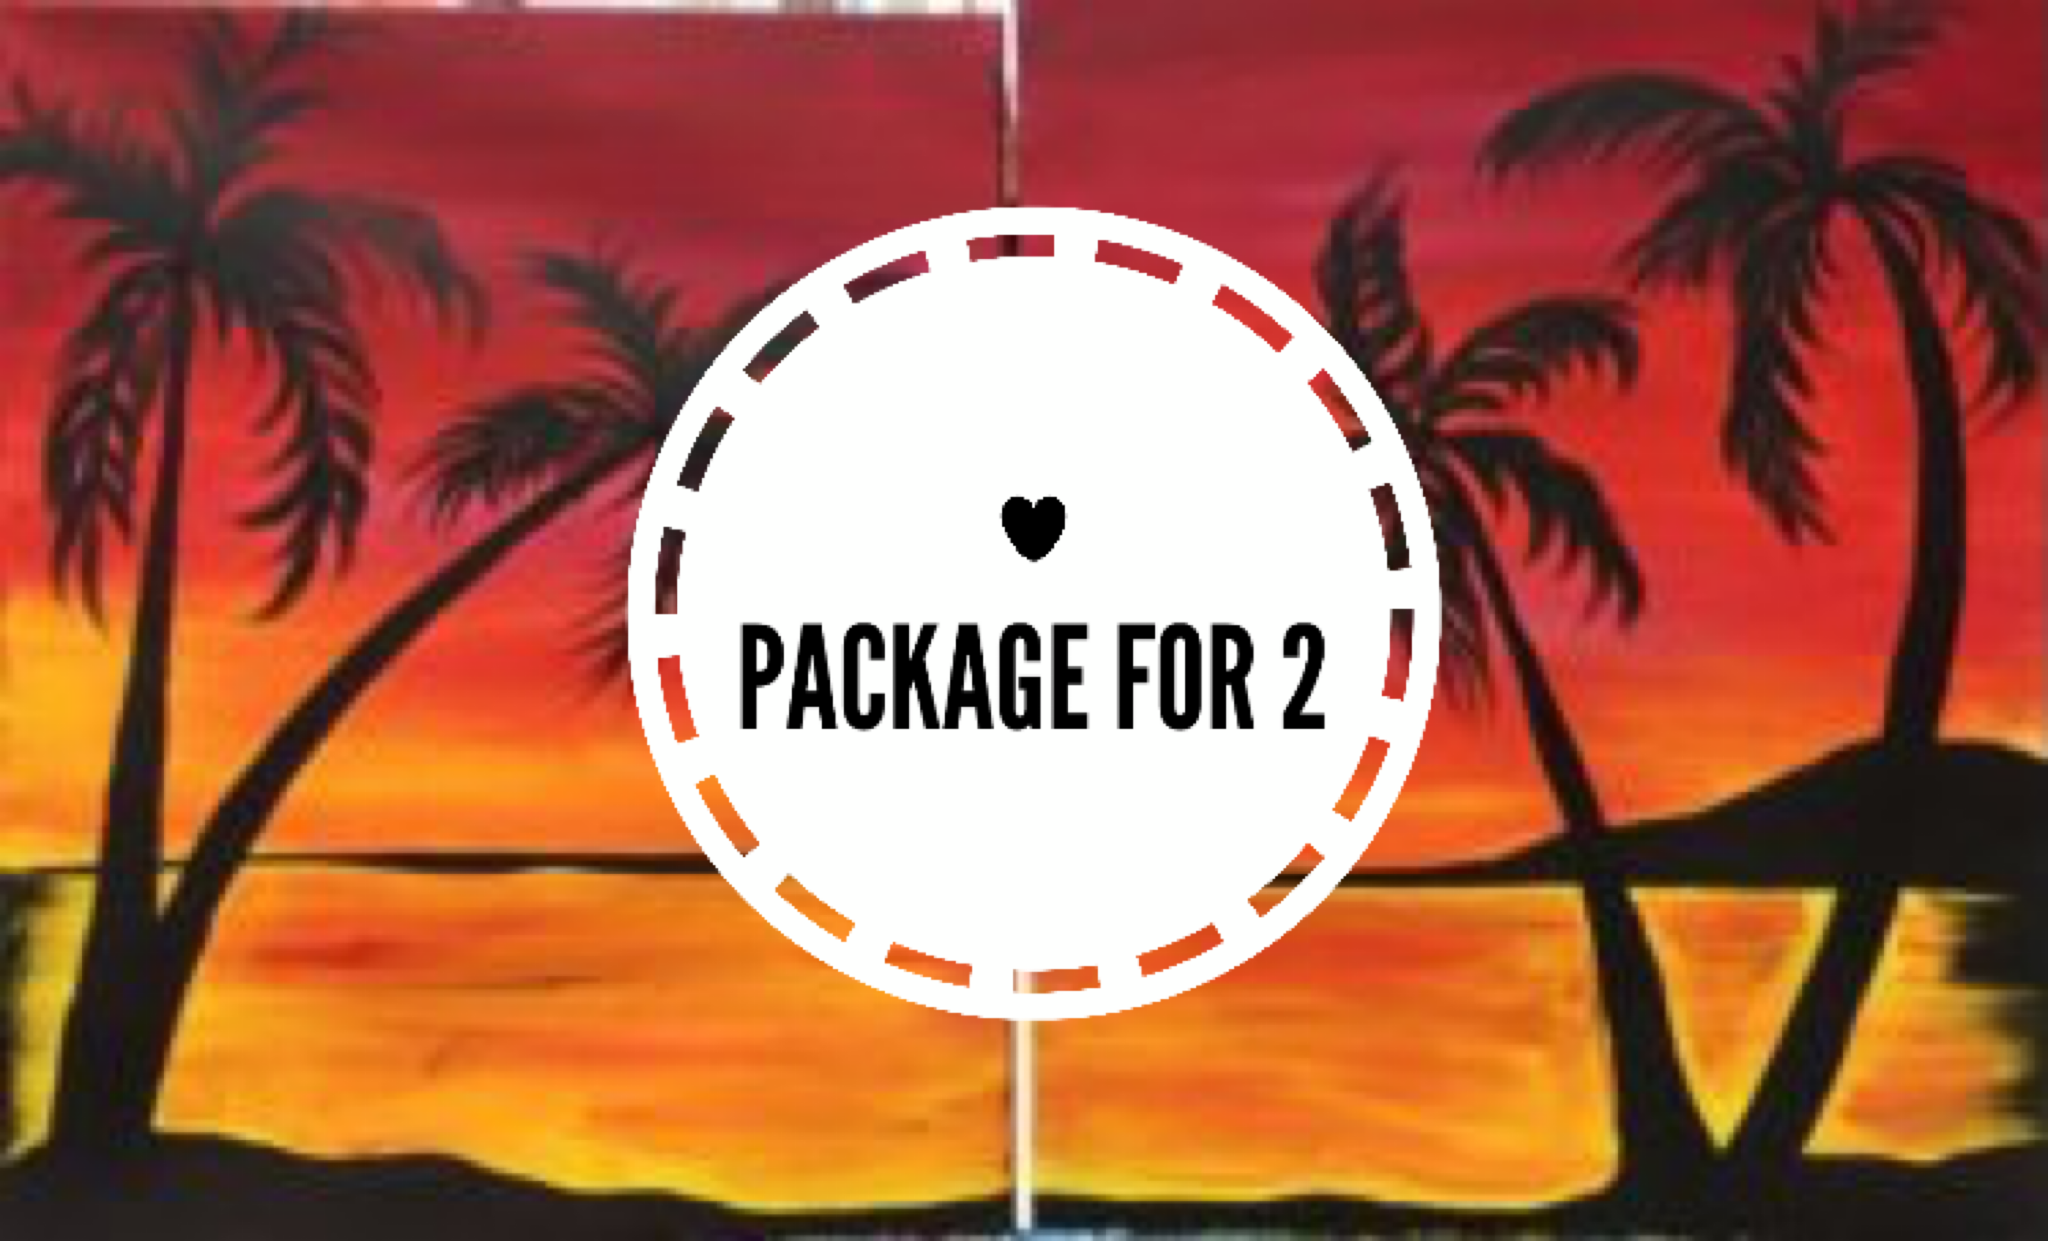 VDAY PACKAGE DEAL!! - Beach Evening Date Night